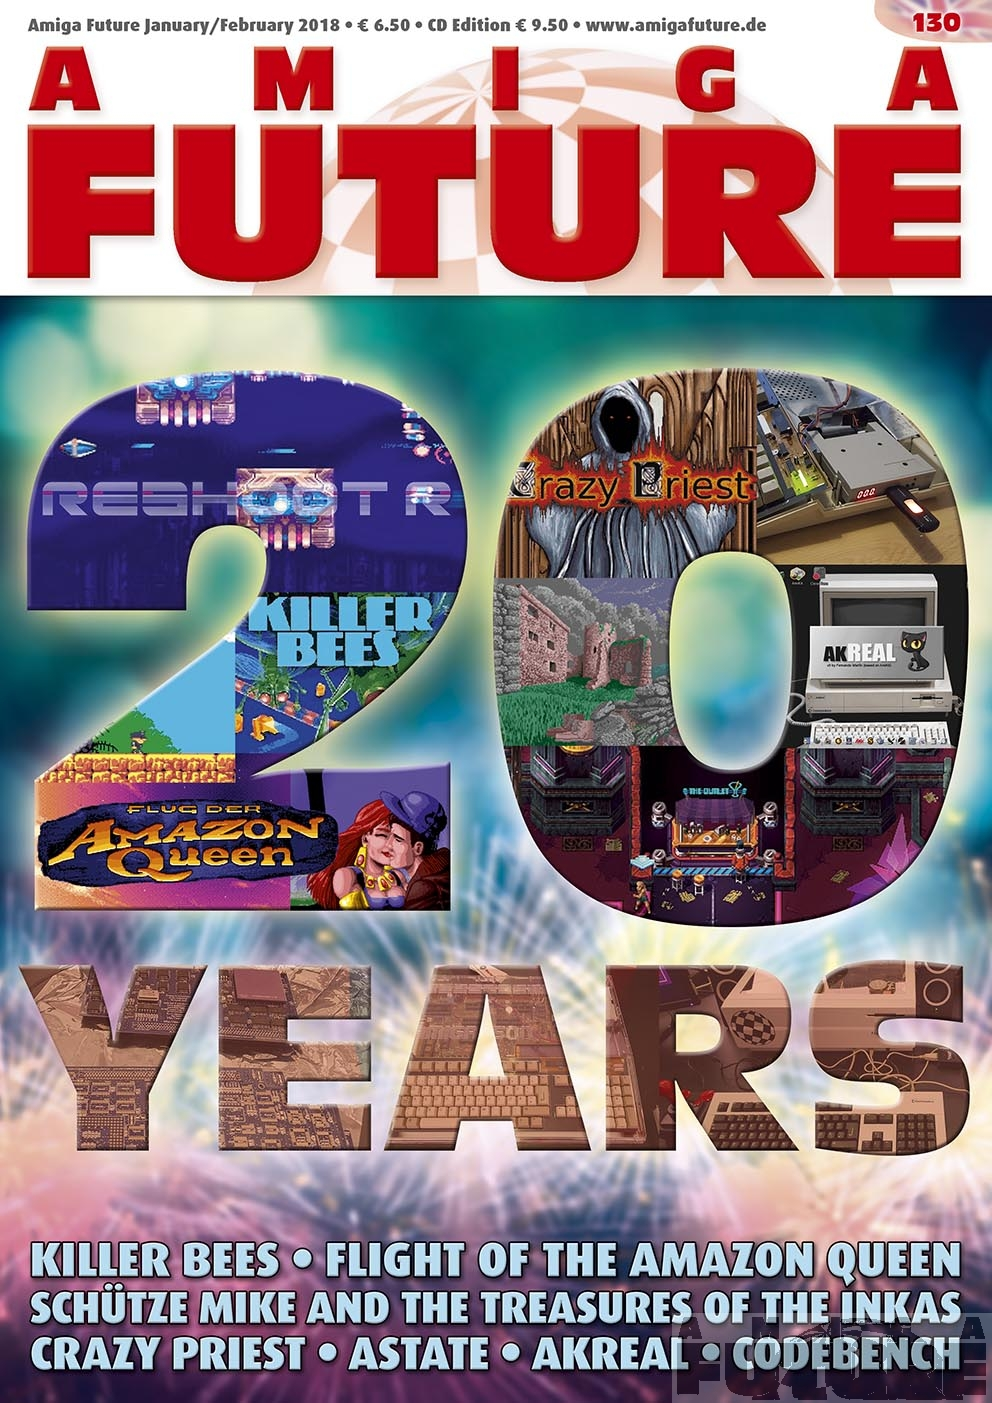 Amiga Future Issue 130 (English)